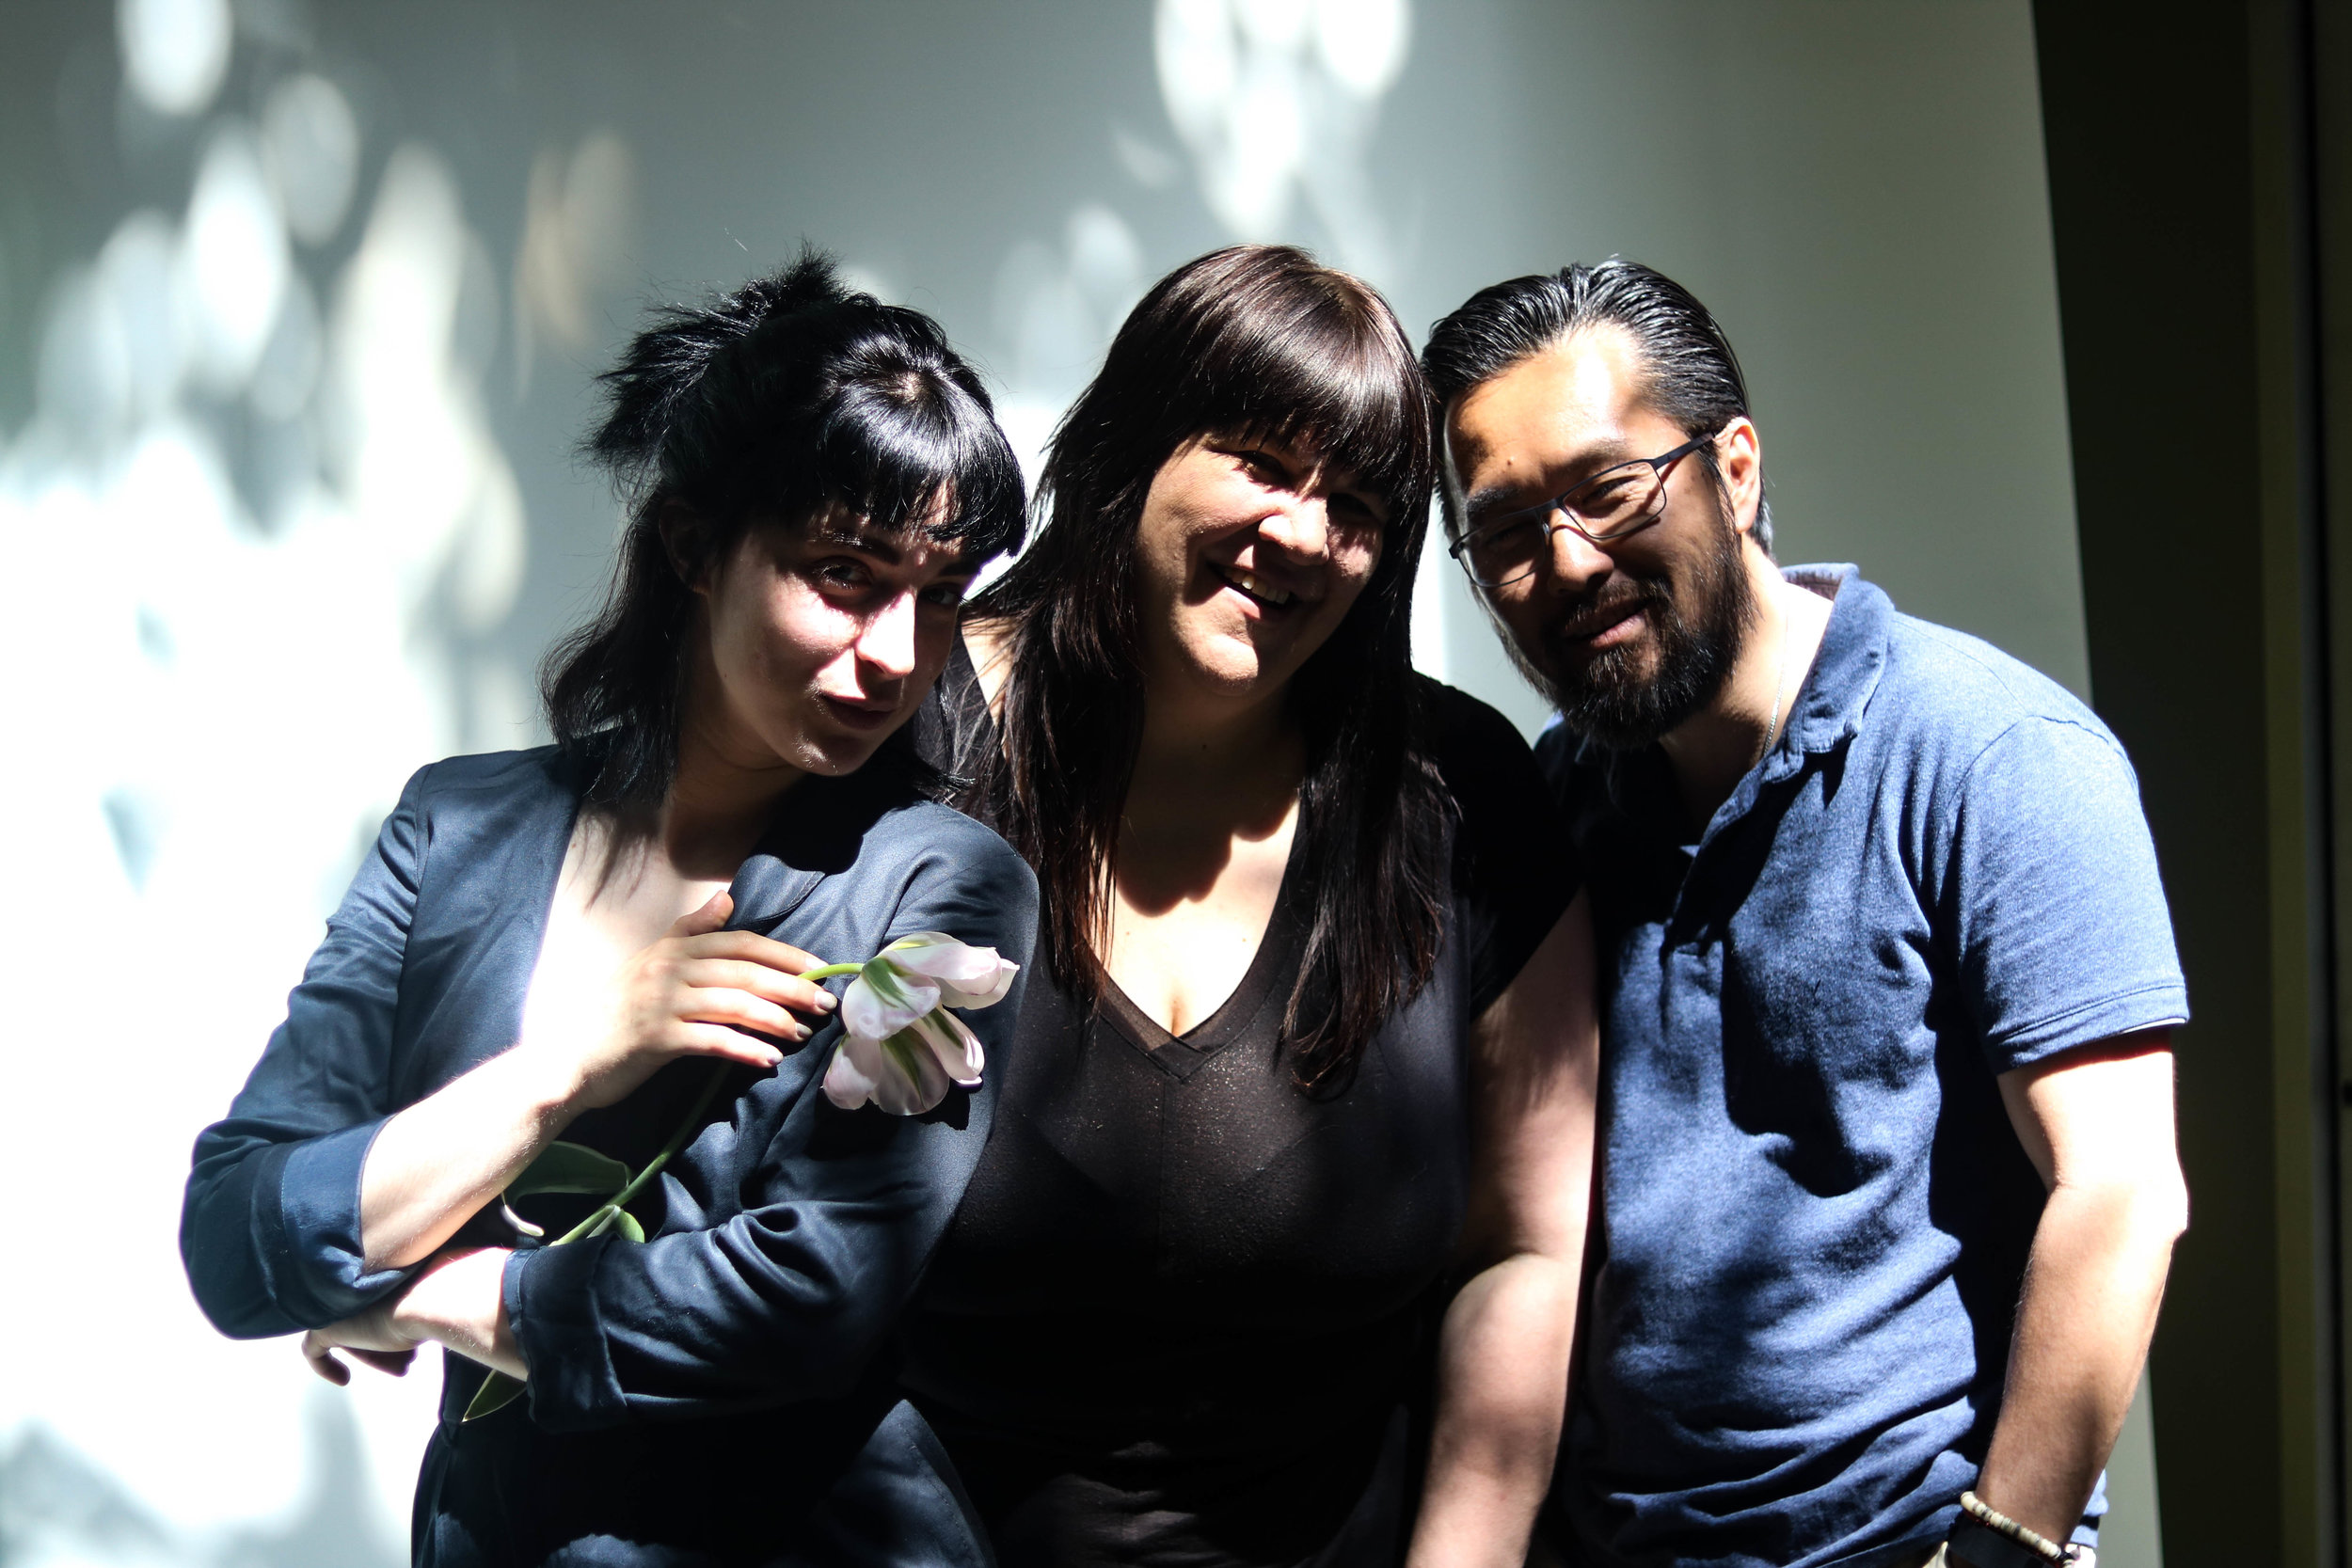 Pictured: FFC founder Ava Holmes, hair stylist Lisa Vann, and photographer James Cheng.